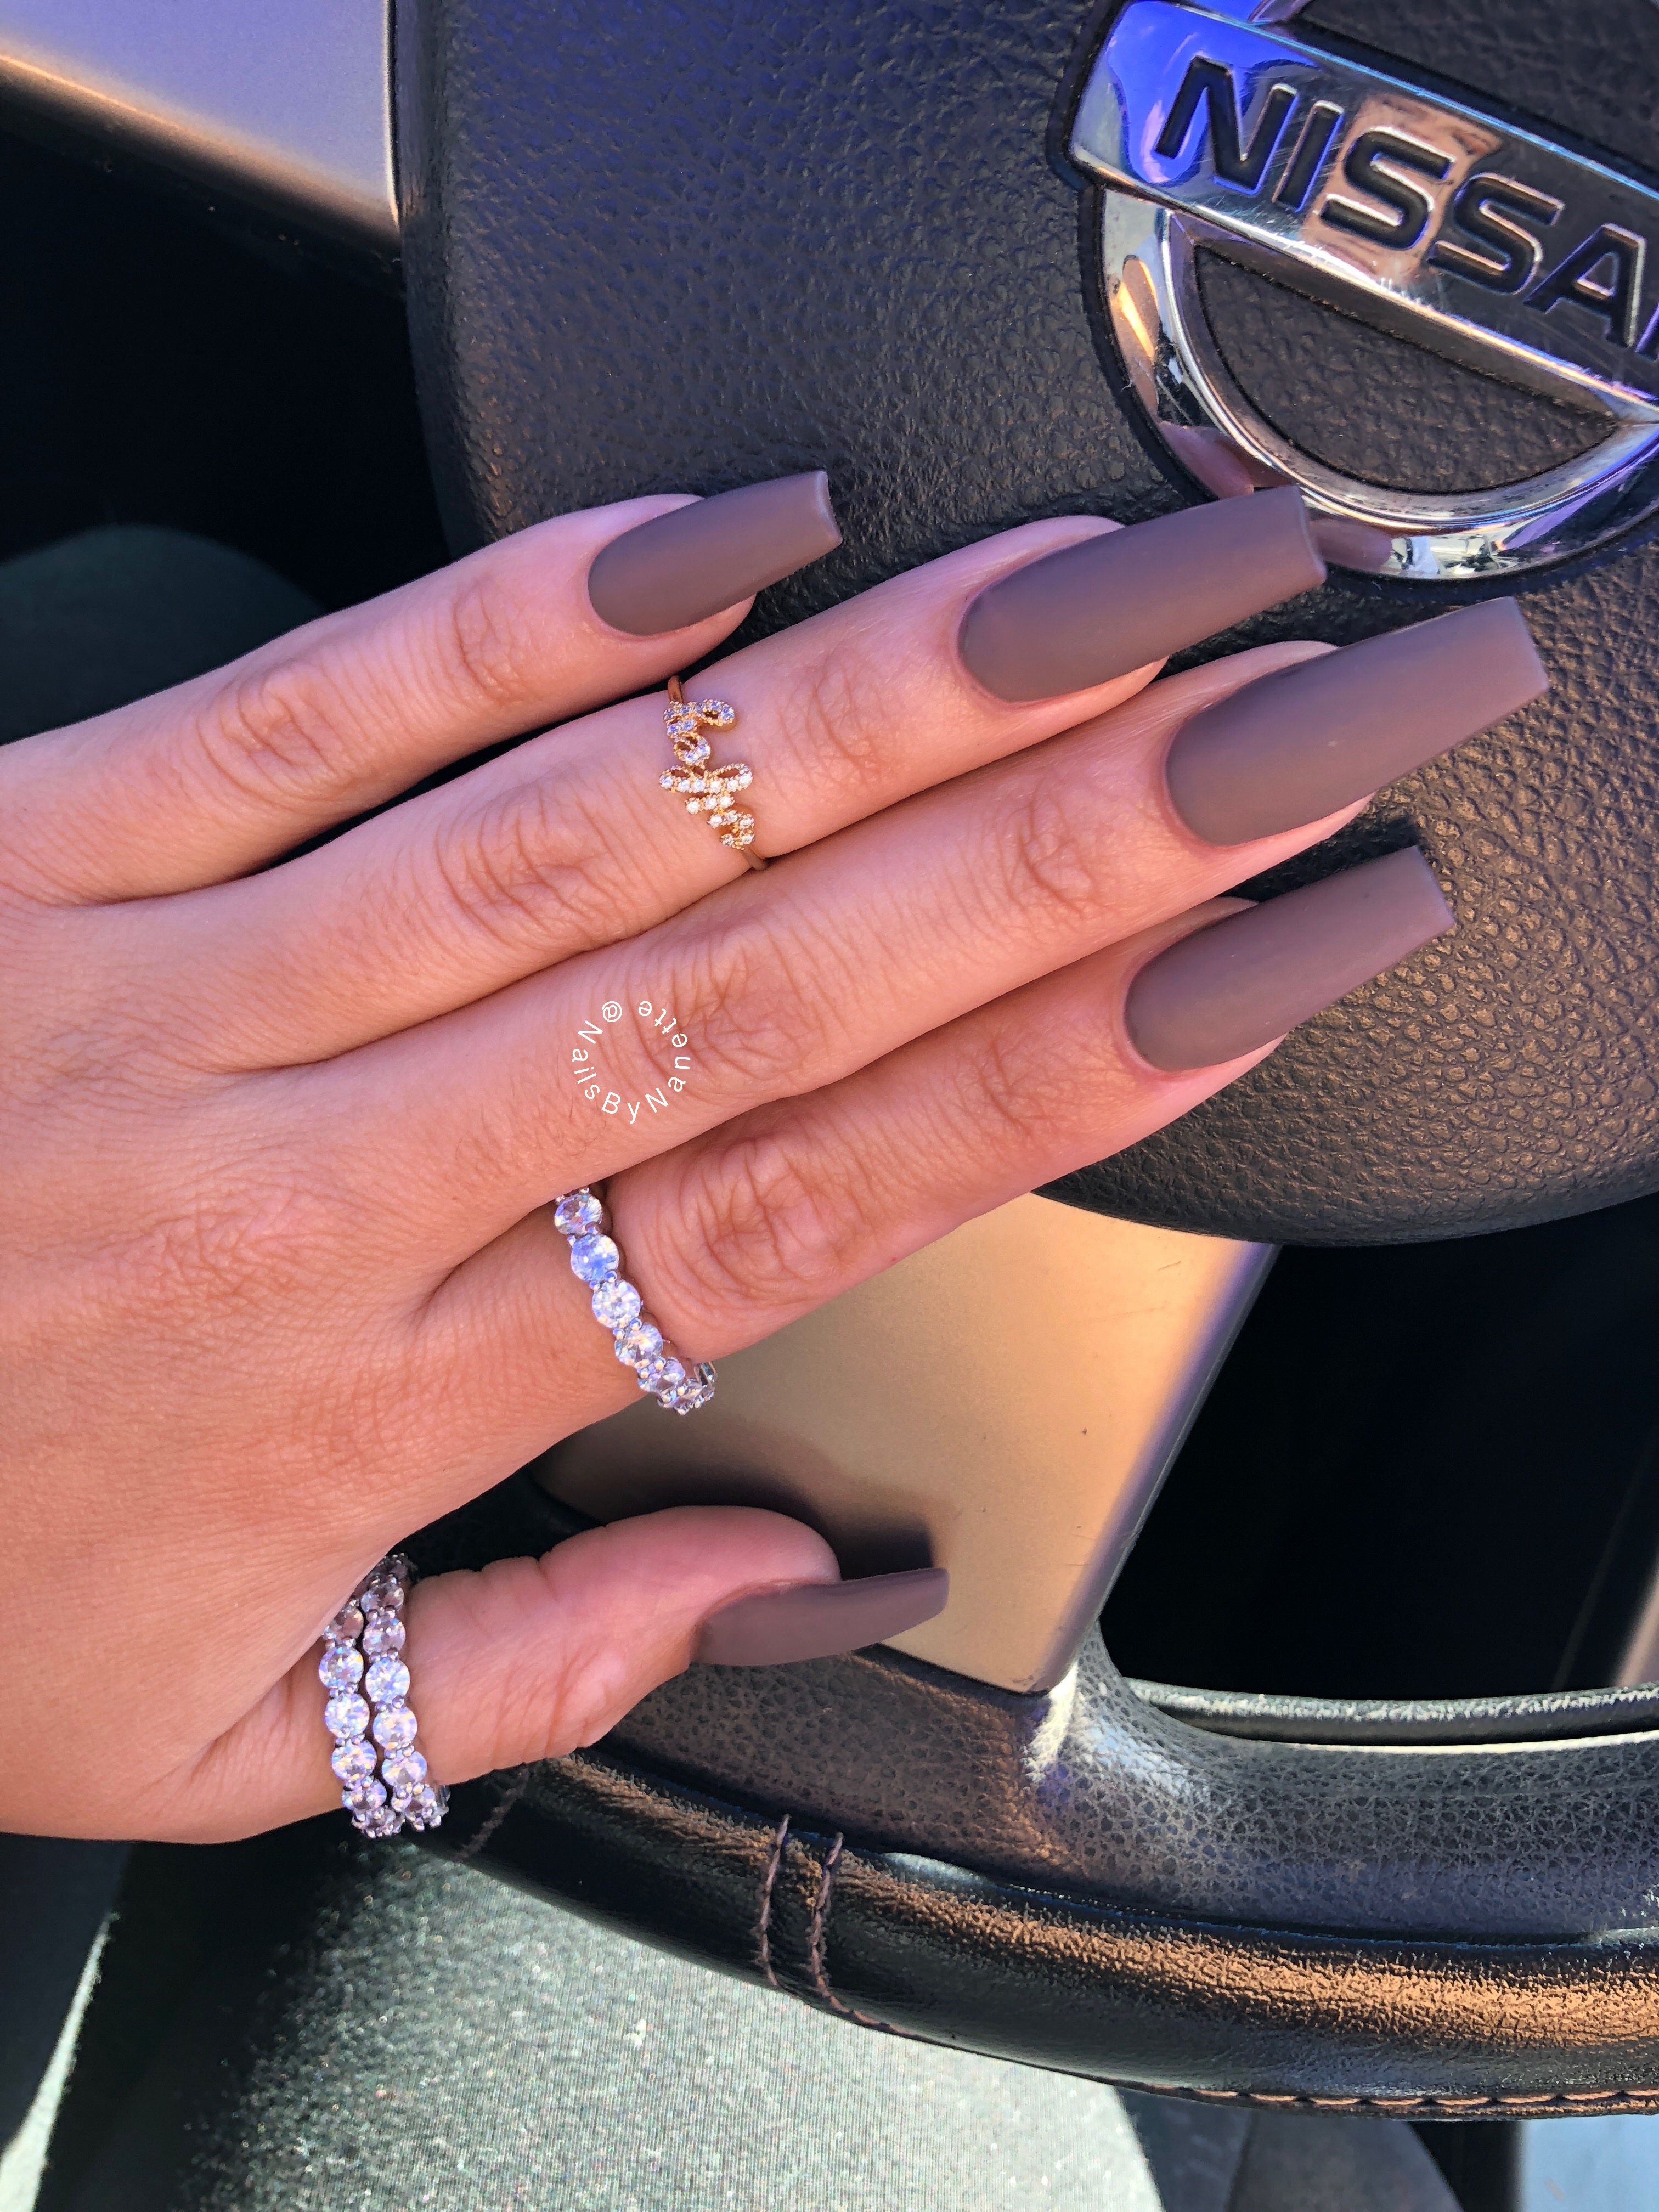 Nails By Nanette Tapered Square Nails Long Square Acrylic Nails Long Square Nails